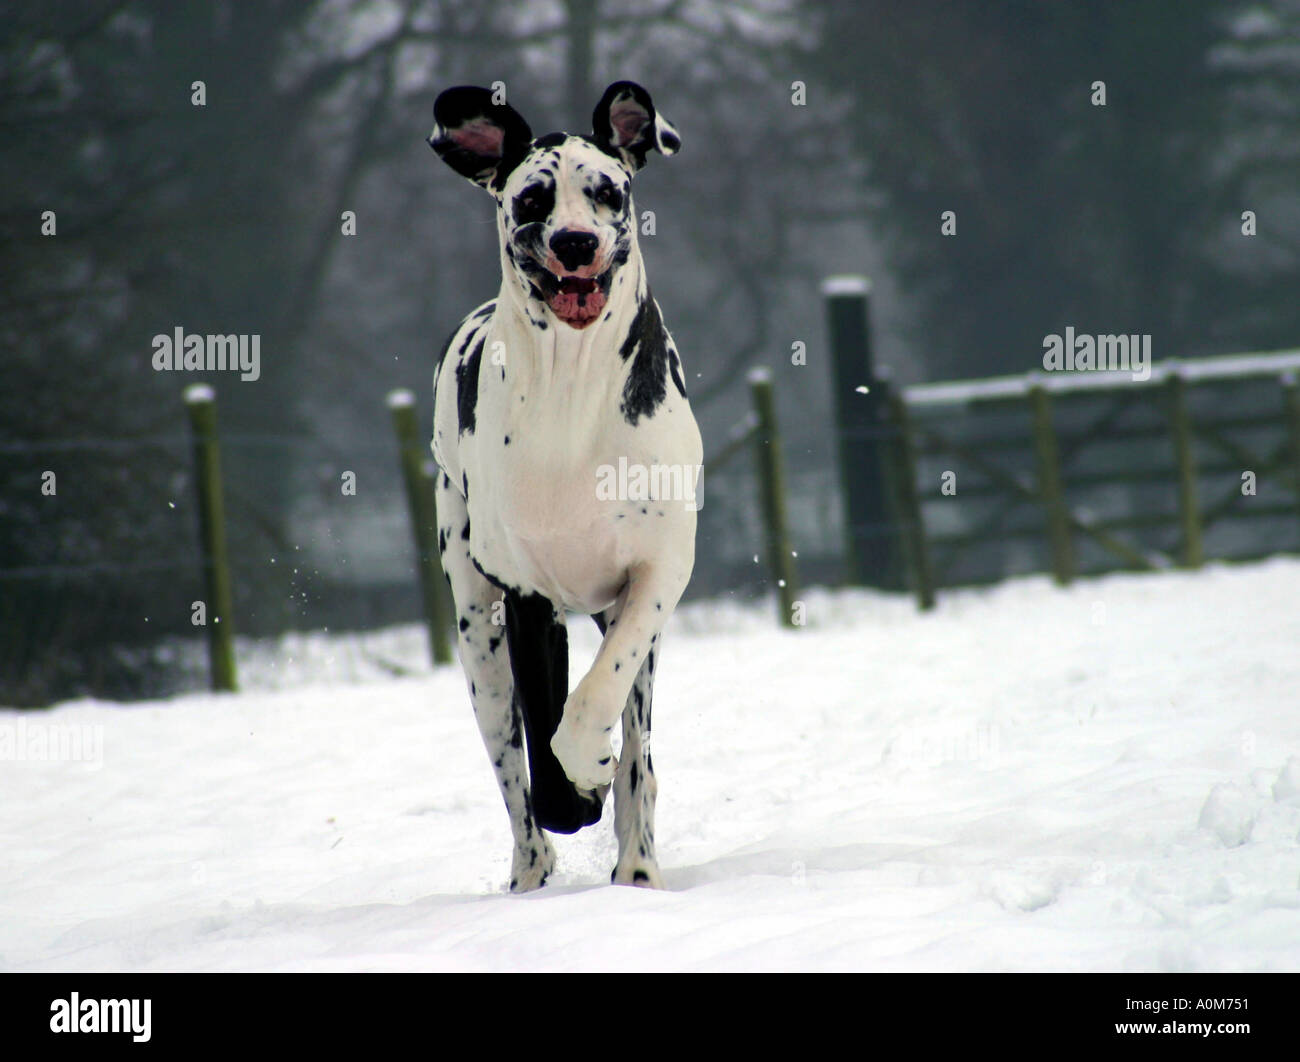 Great dane dog running in snow - Stock Image